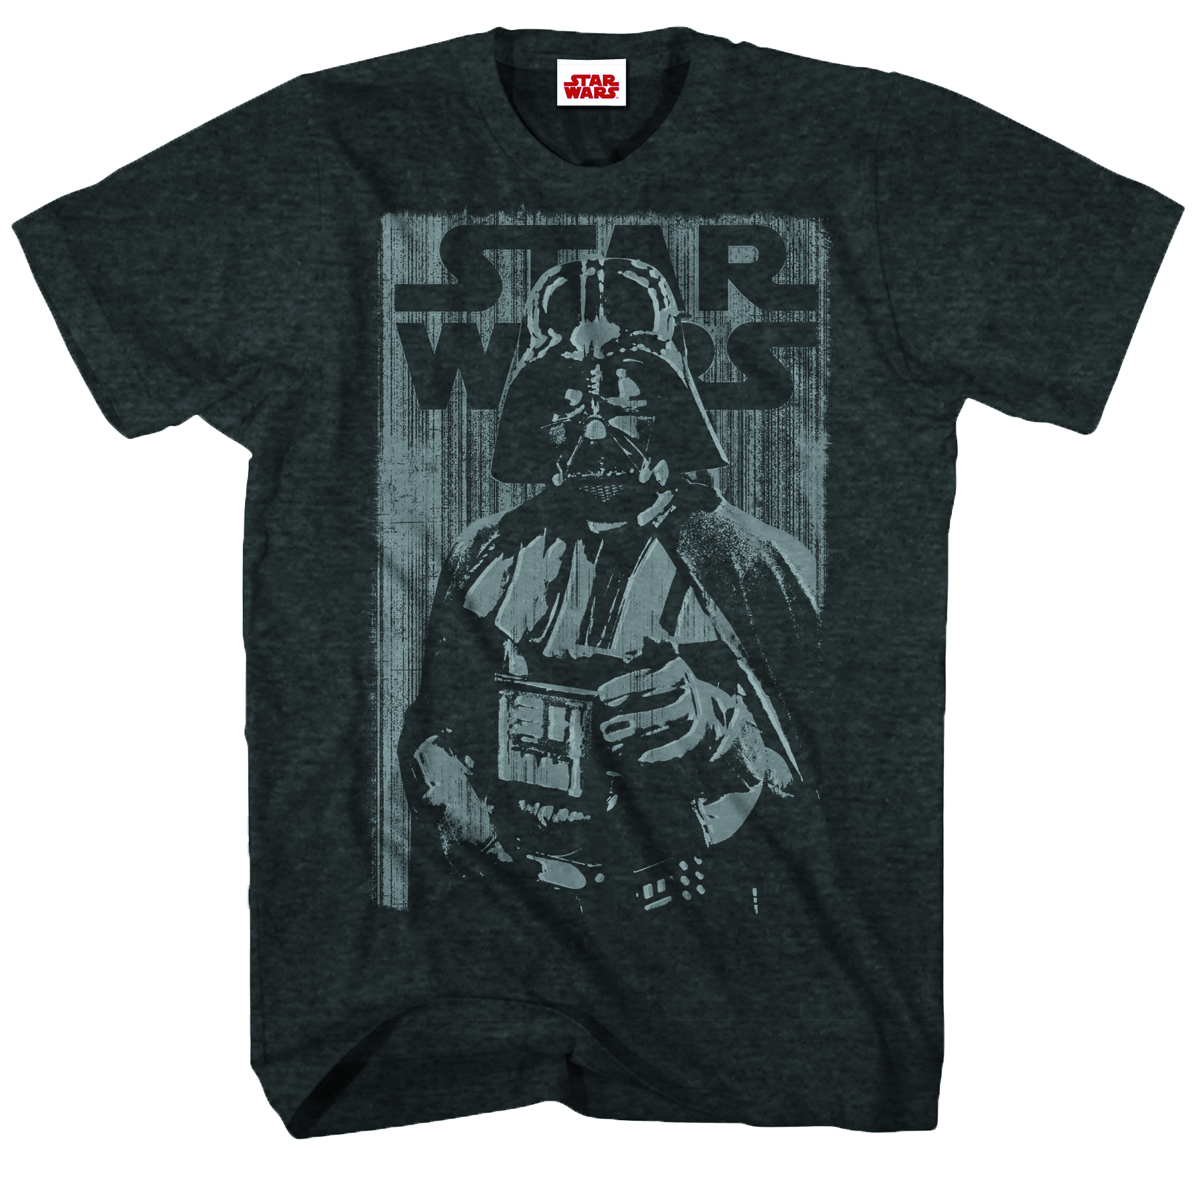 STAR WARS COOL AS ME PX BLK HEATHER T/S SM